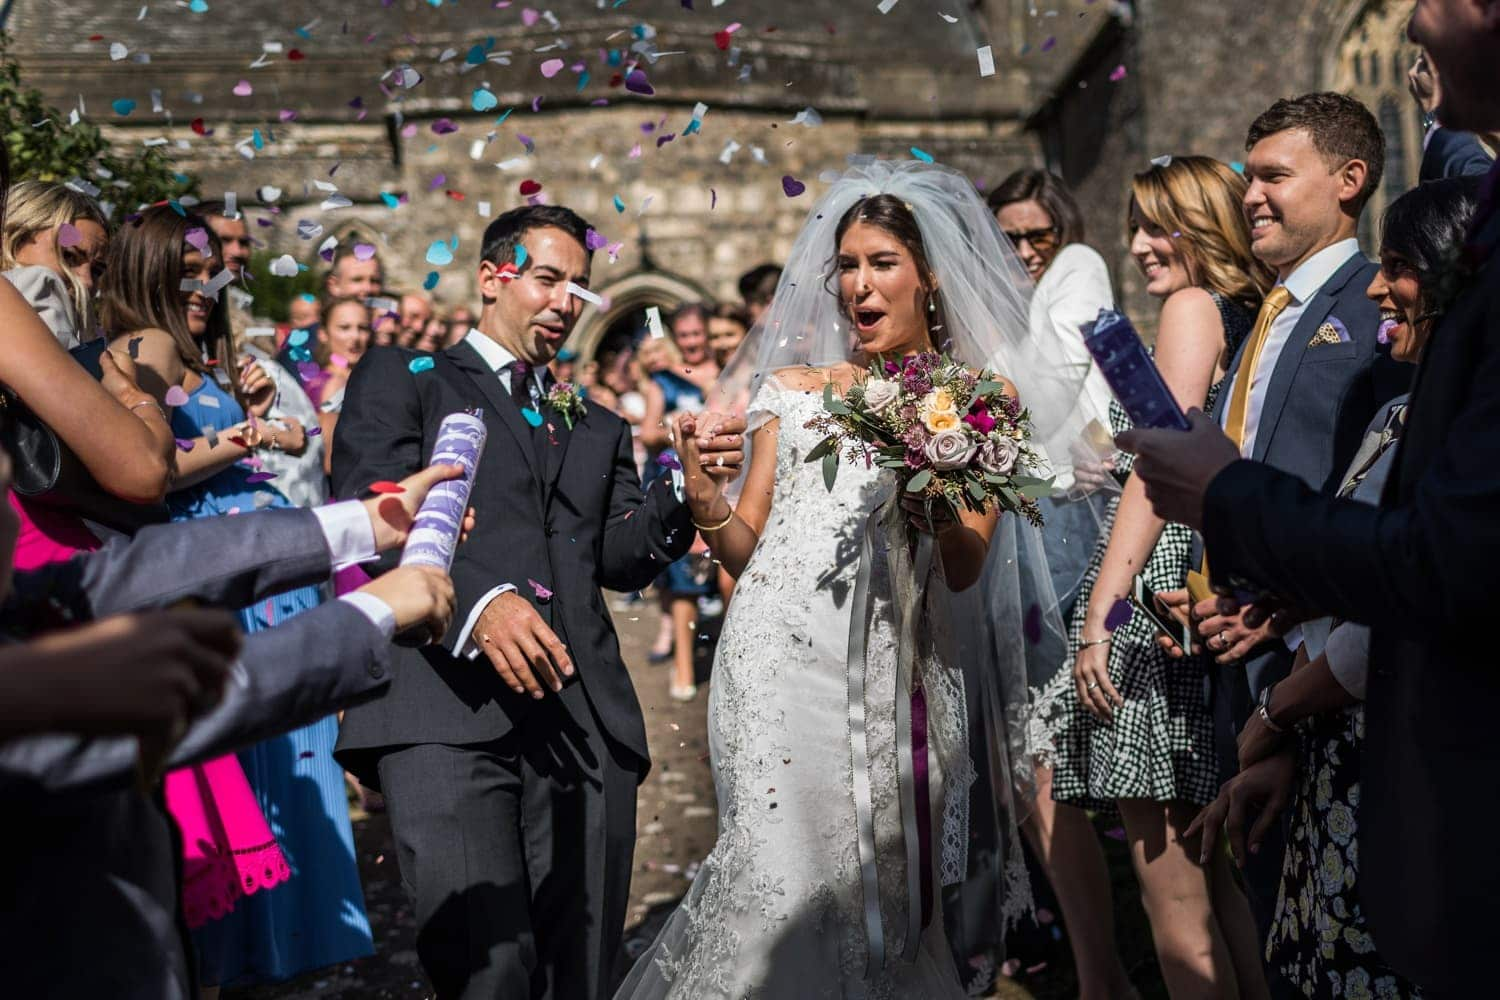 Somerset wedding guests throw confetti at bride and groom